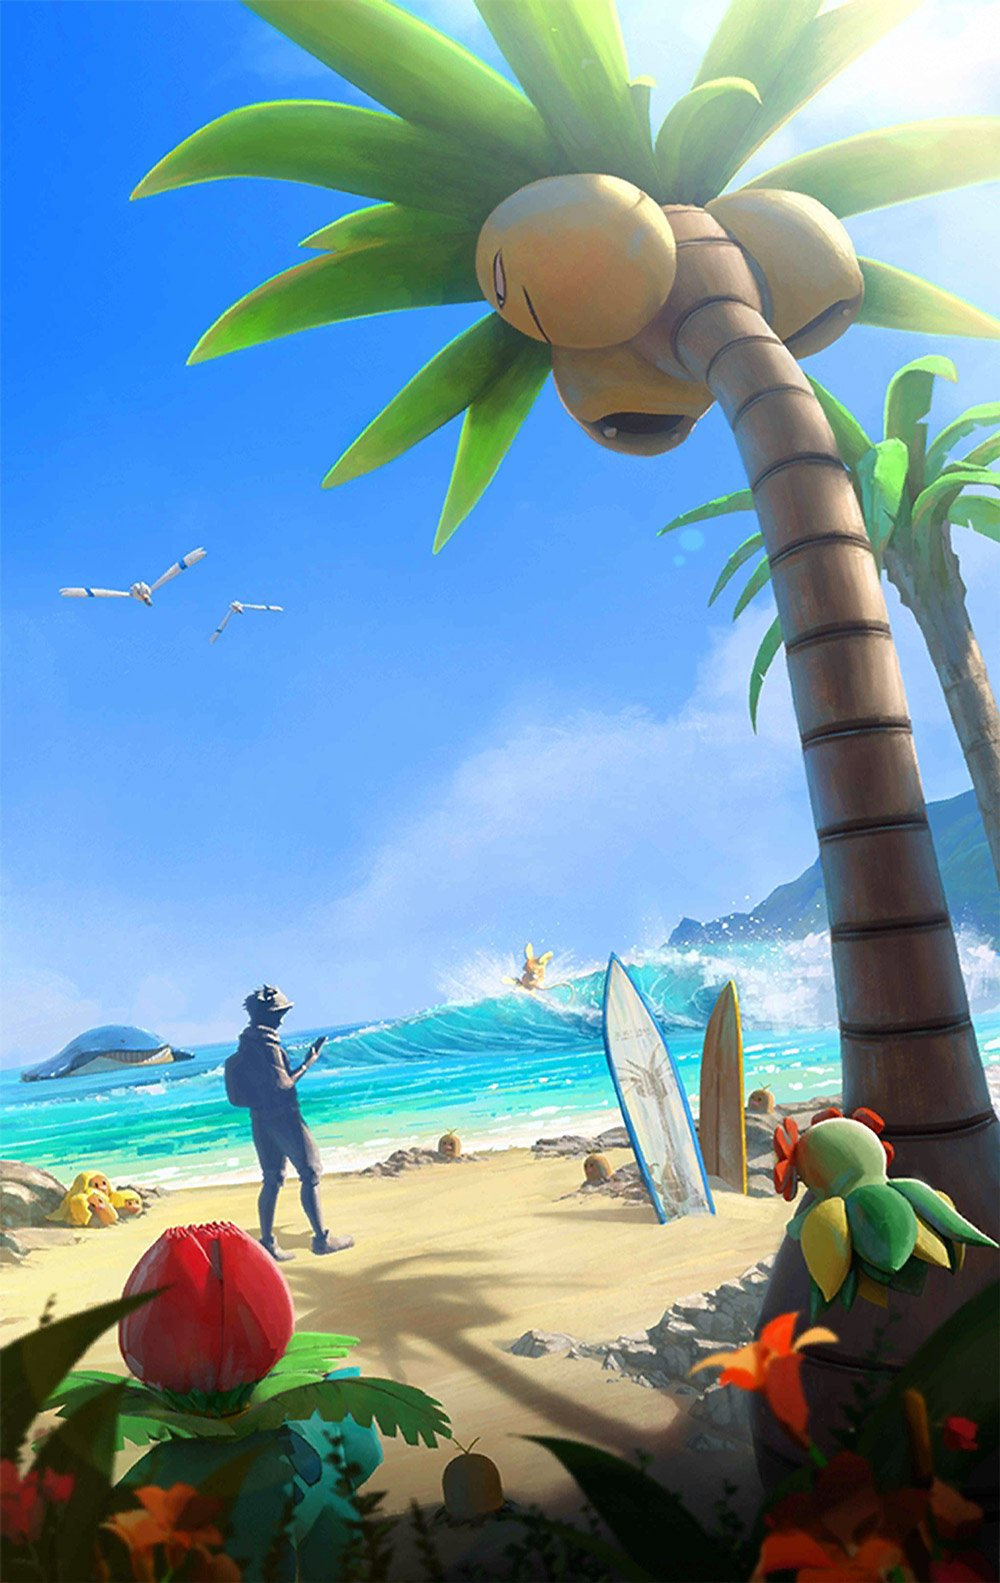 Pokemon GO Wallpaper: Summer 2018